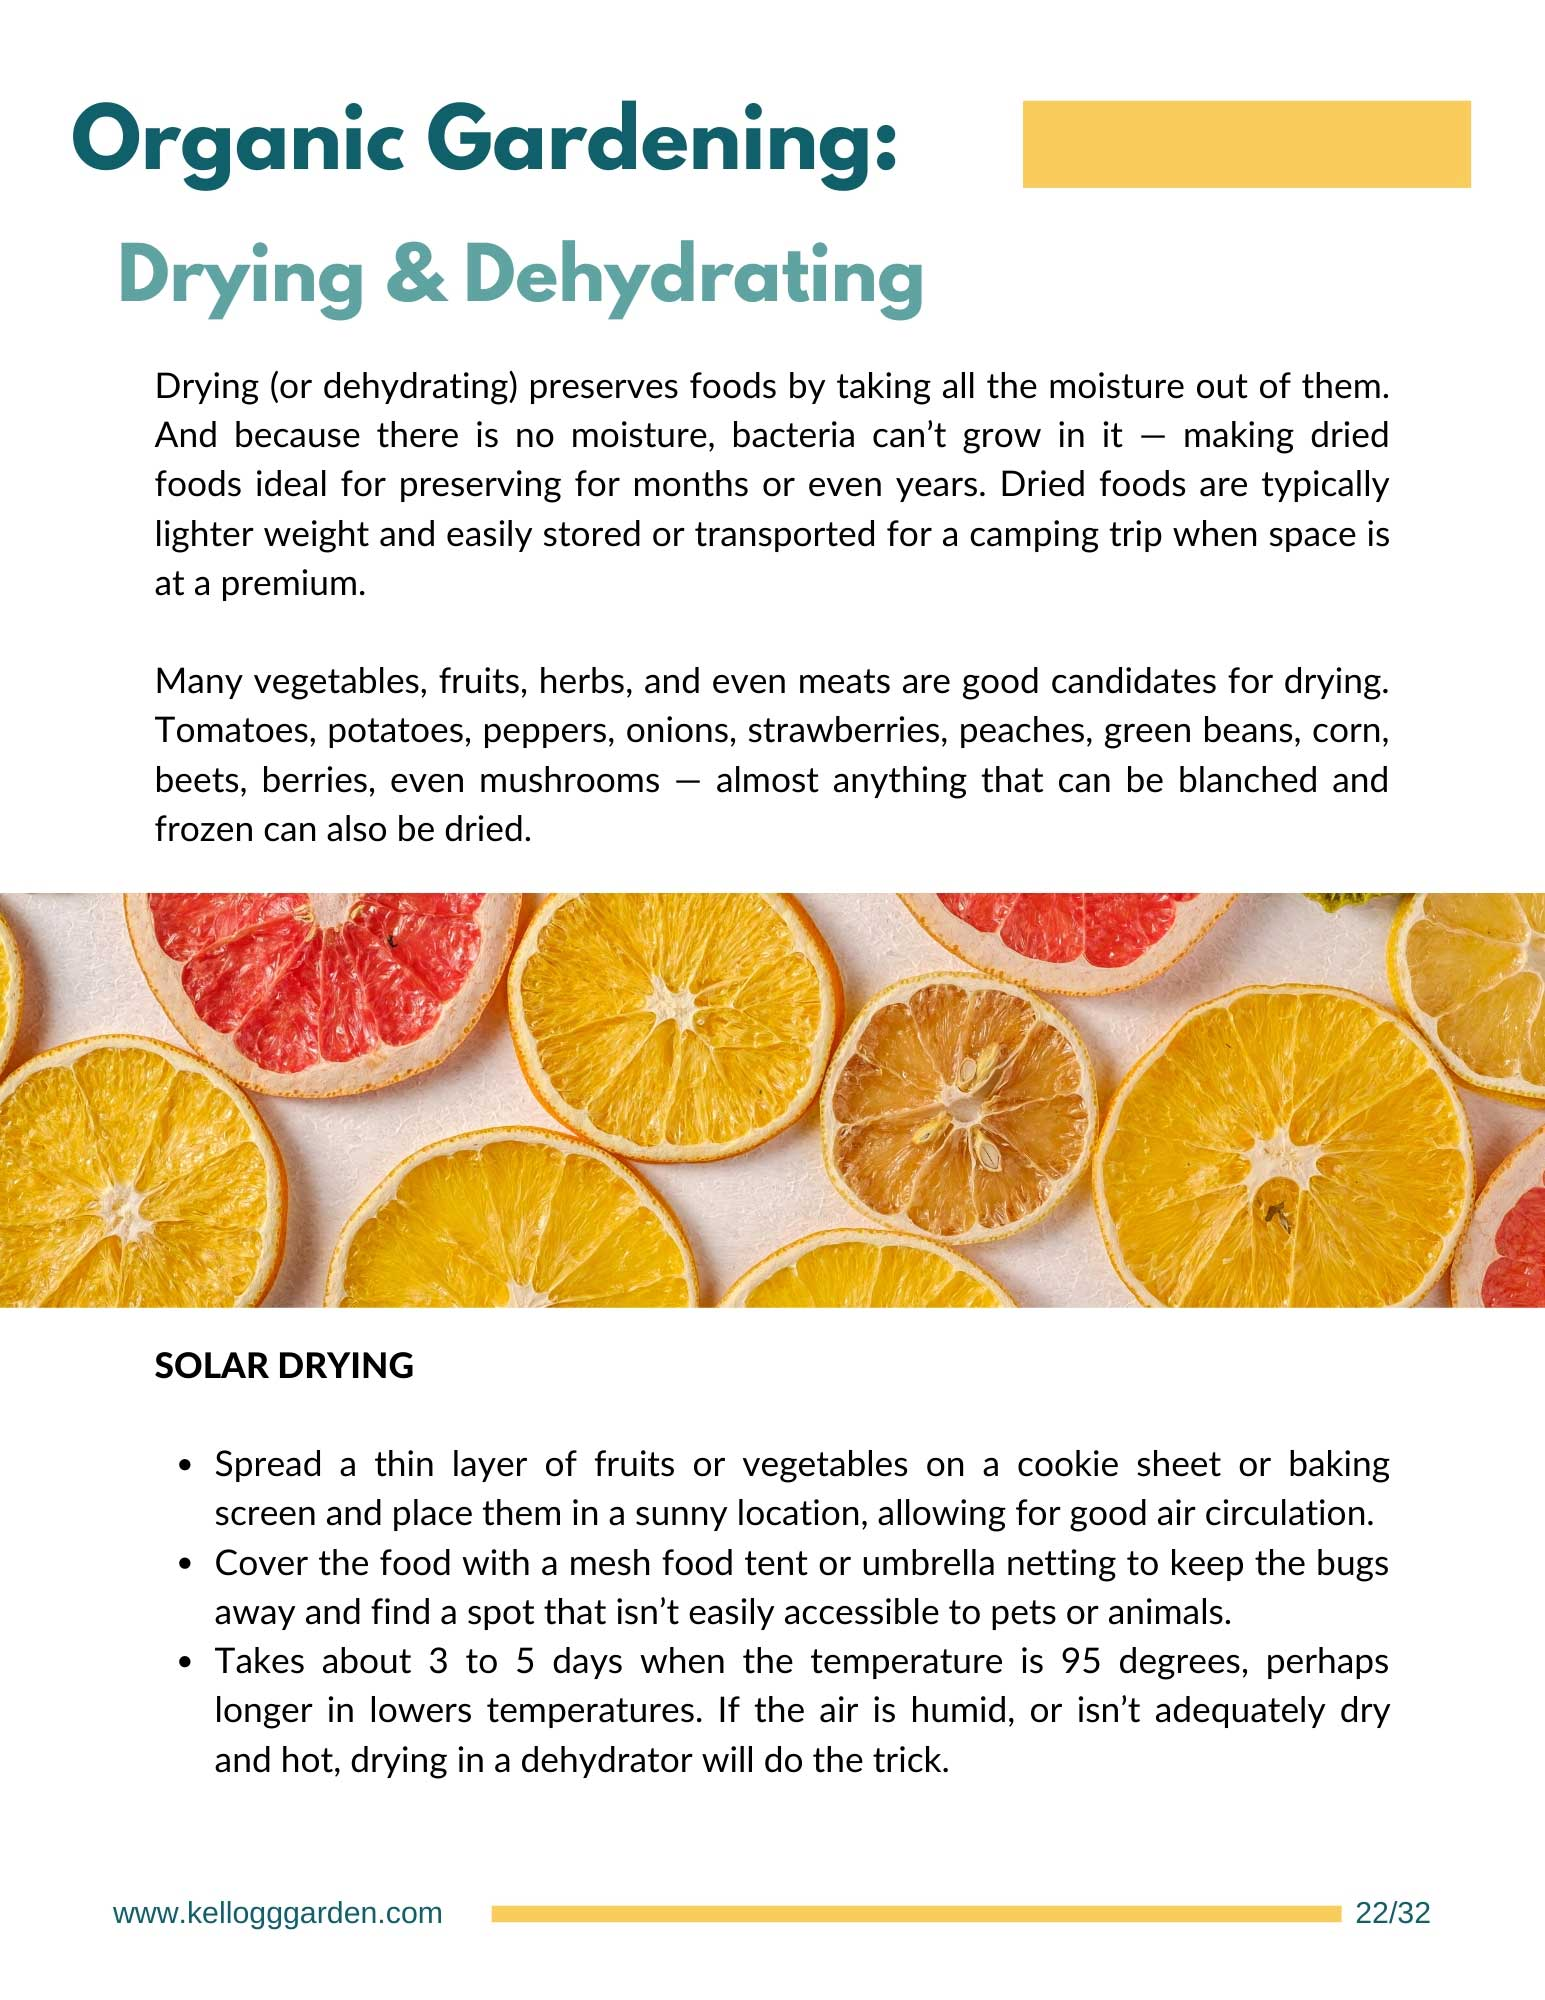 Harvesting guide page on drying and dehydrating